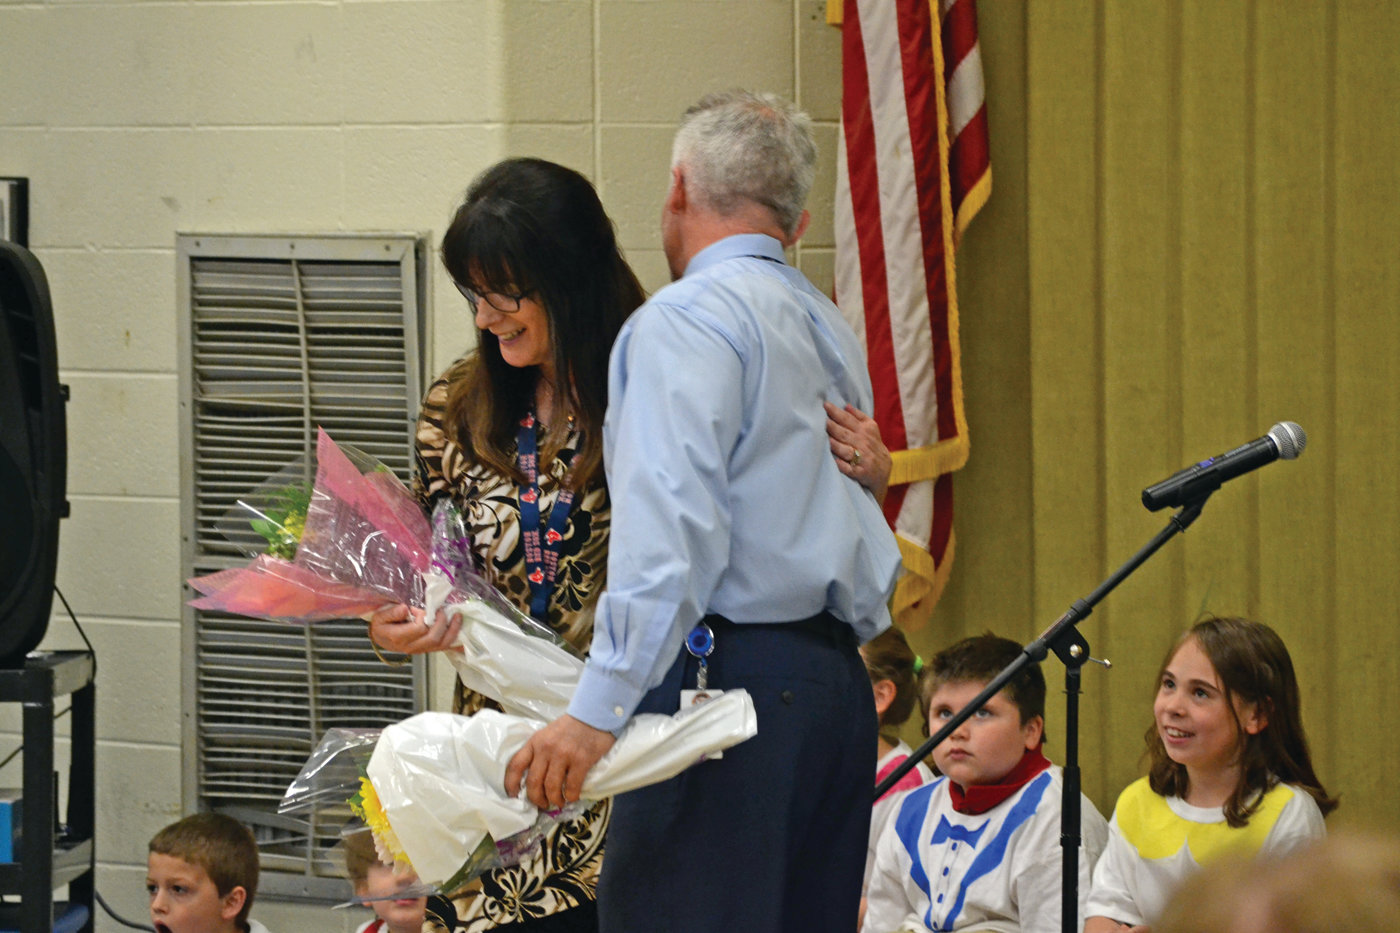 FLOWER POWER: Principal Gary McCoombs gives flowers to Meredith Andreozzi following the performance.